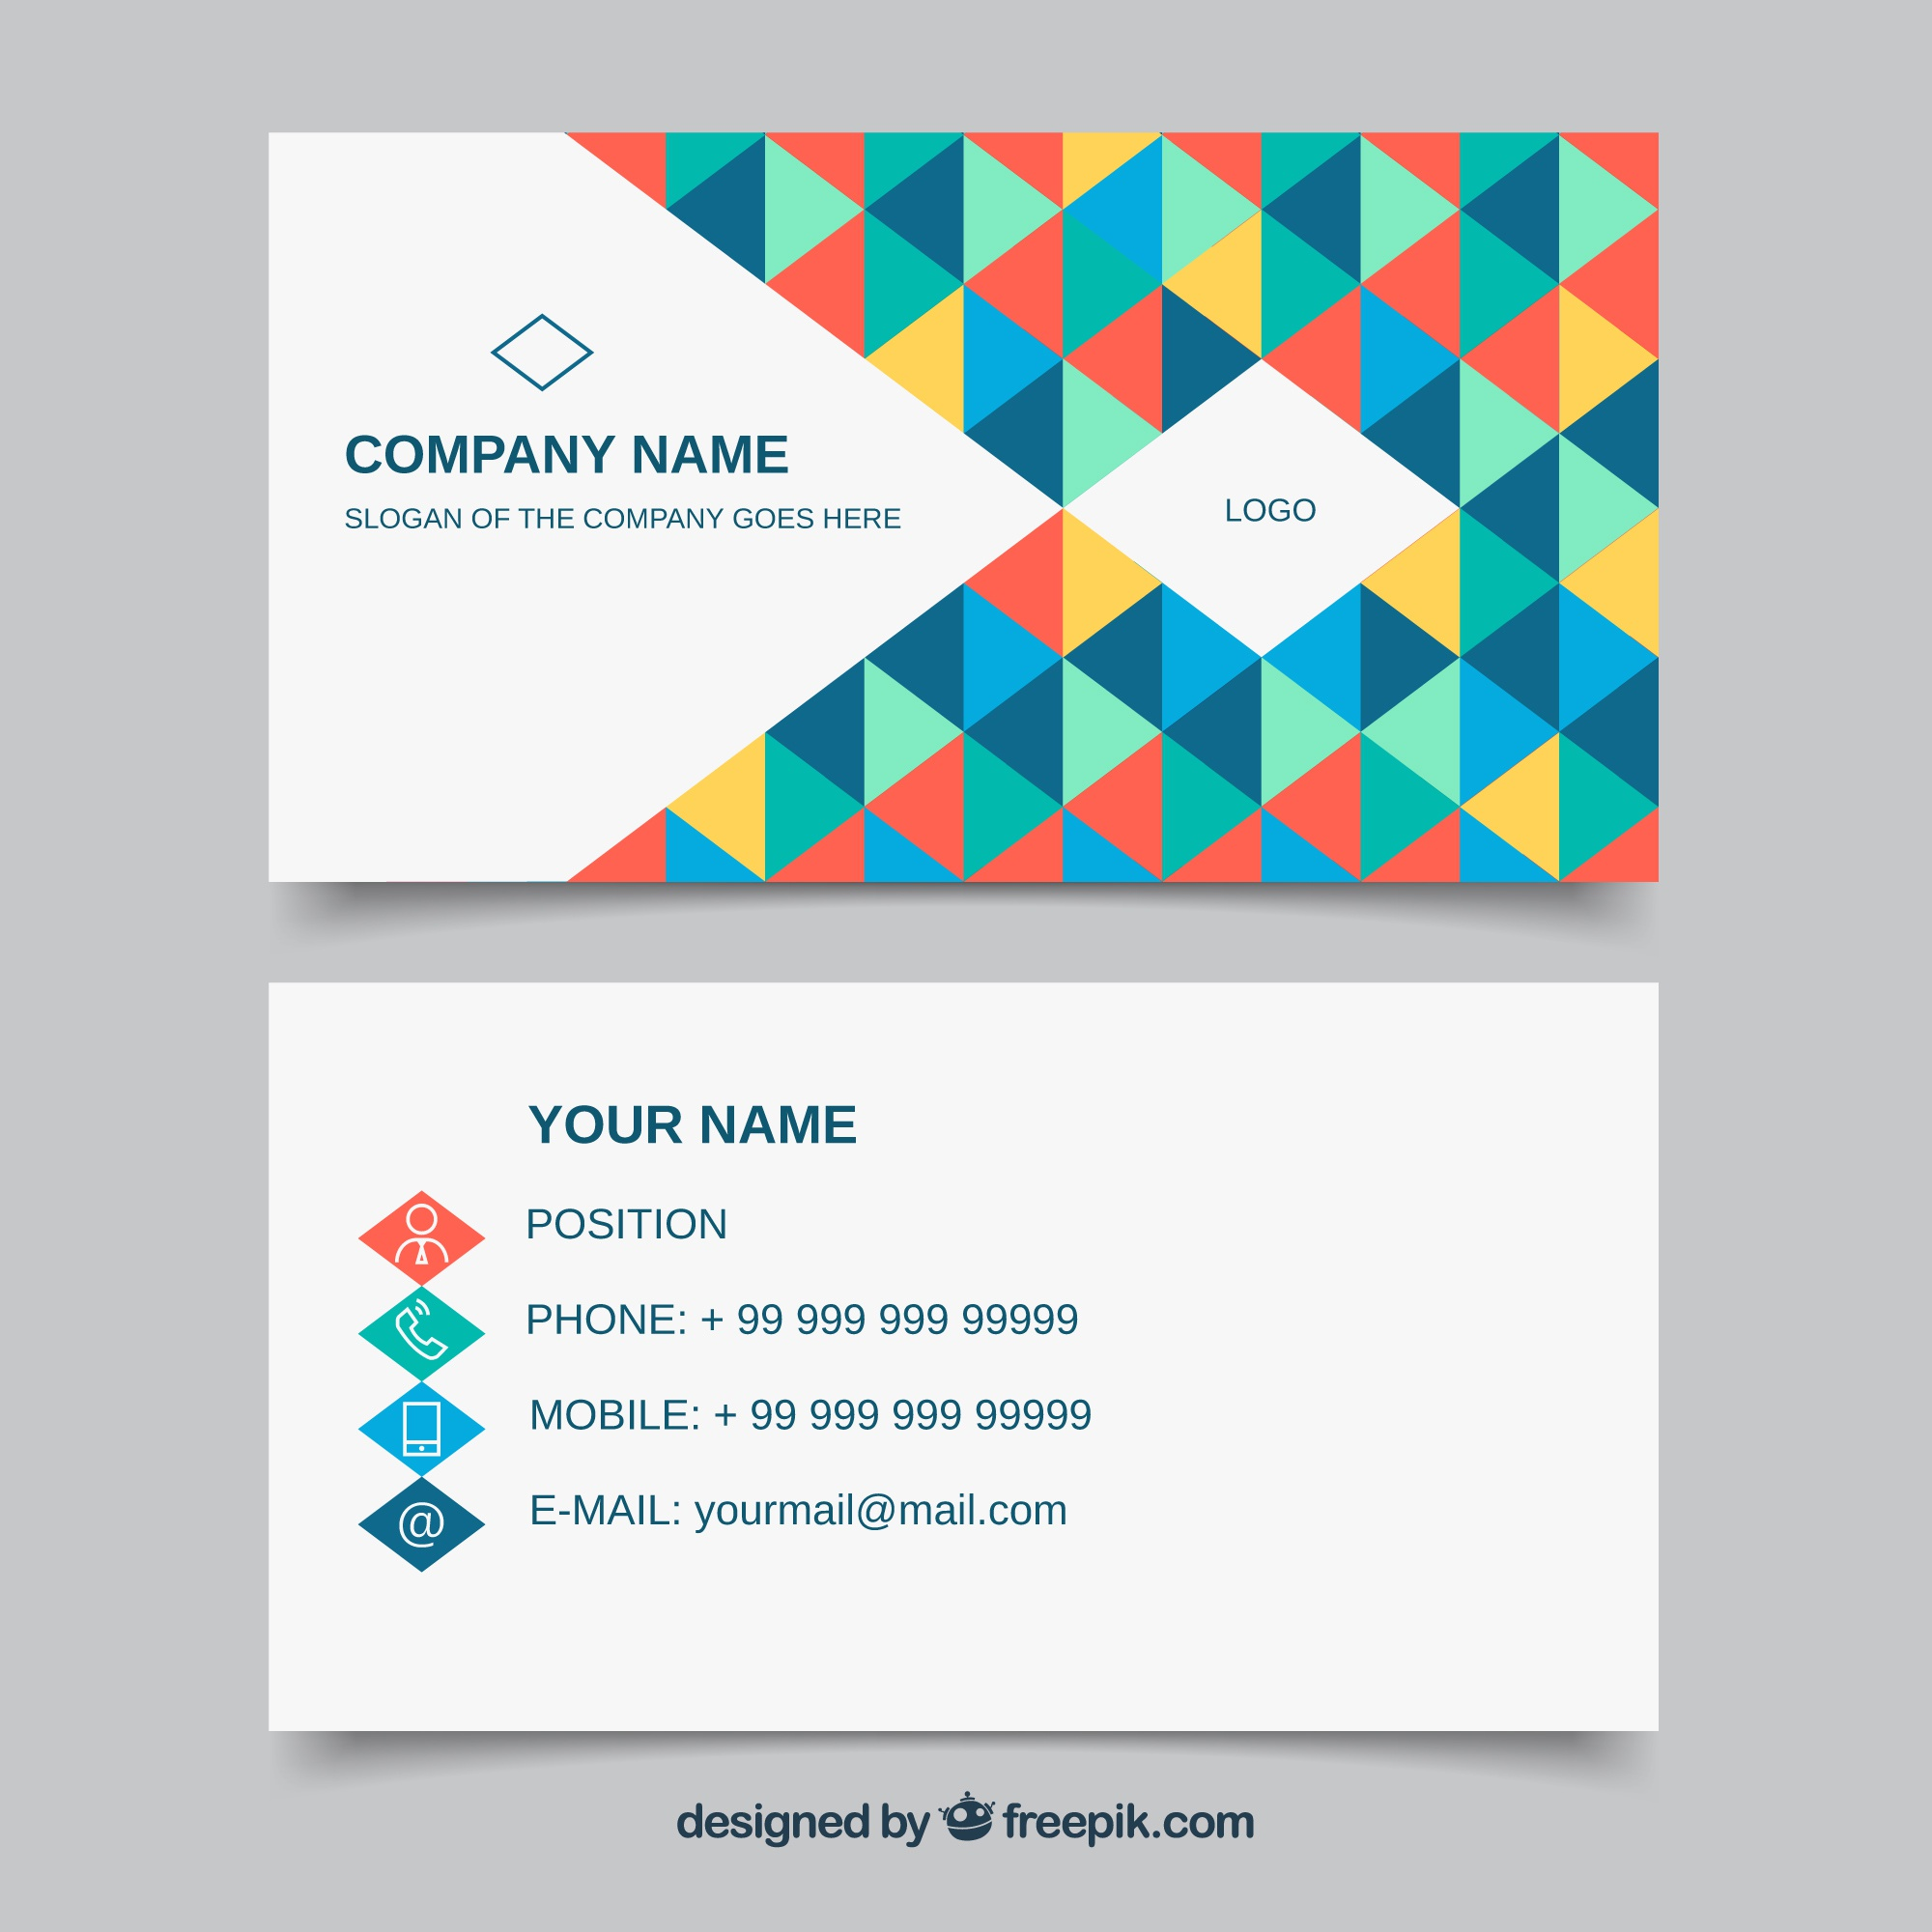 Corporate card of colorful triangles